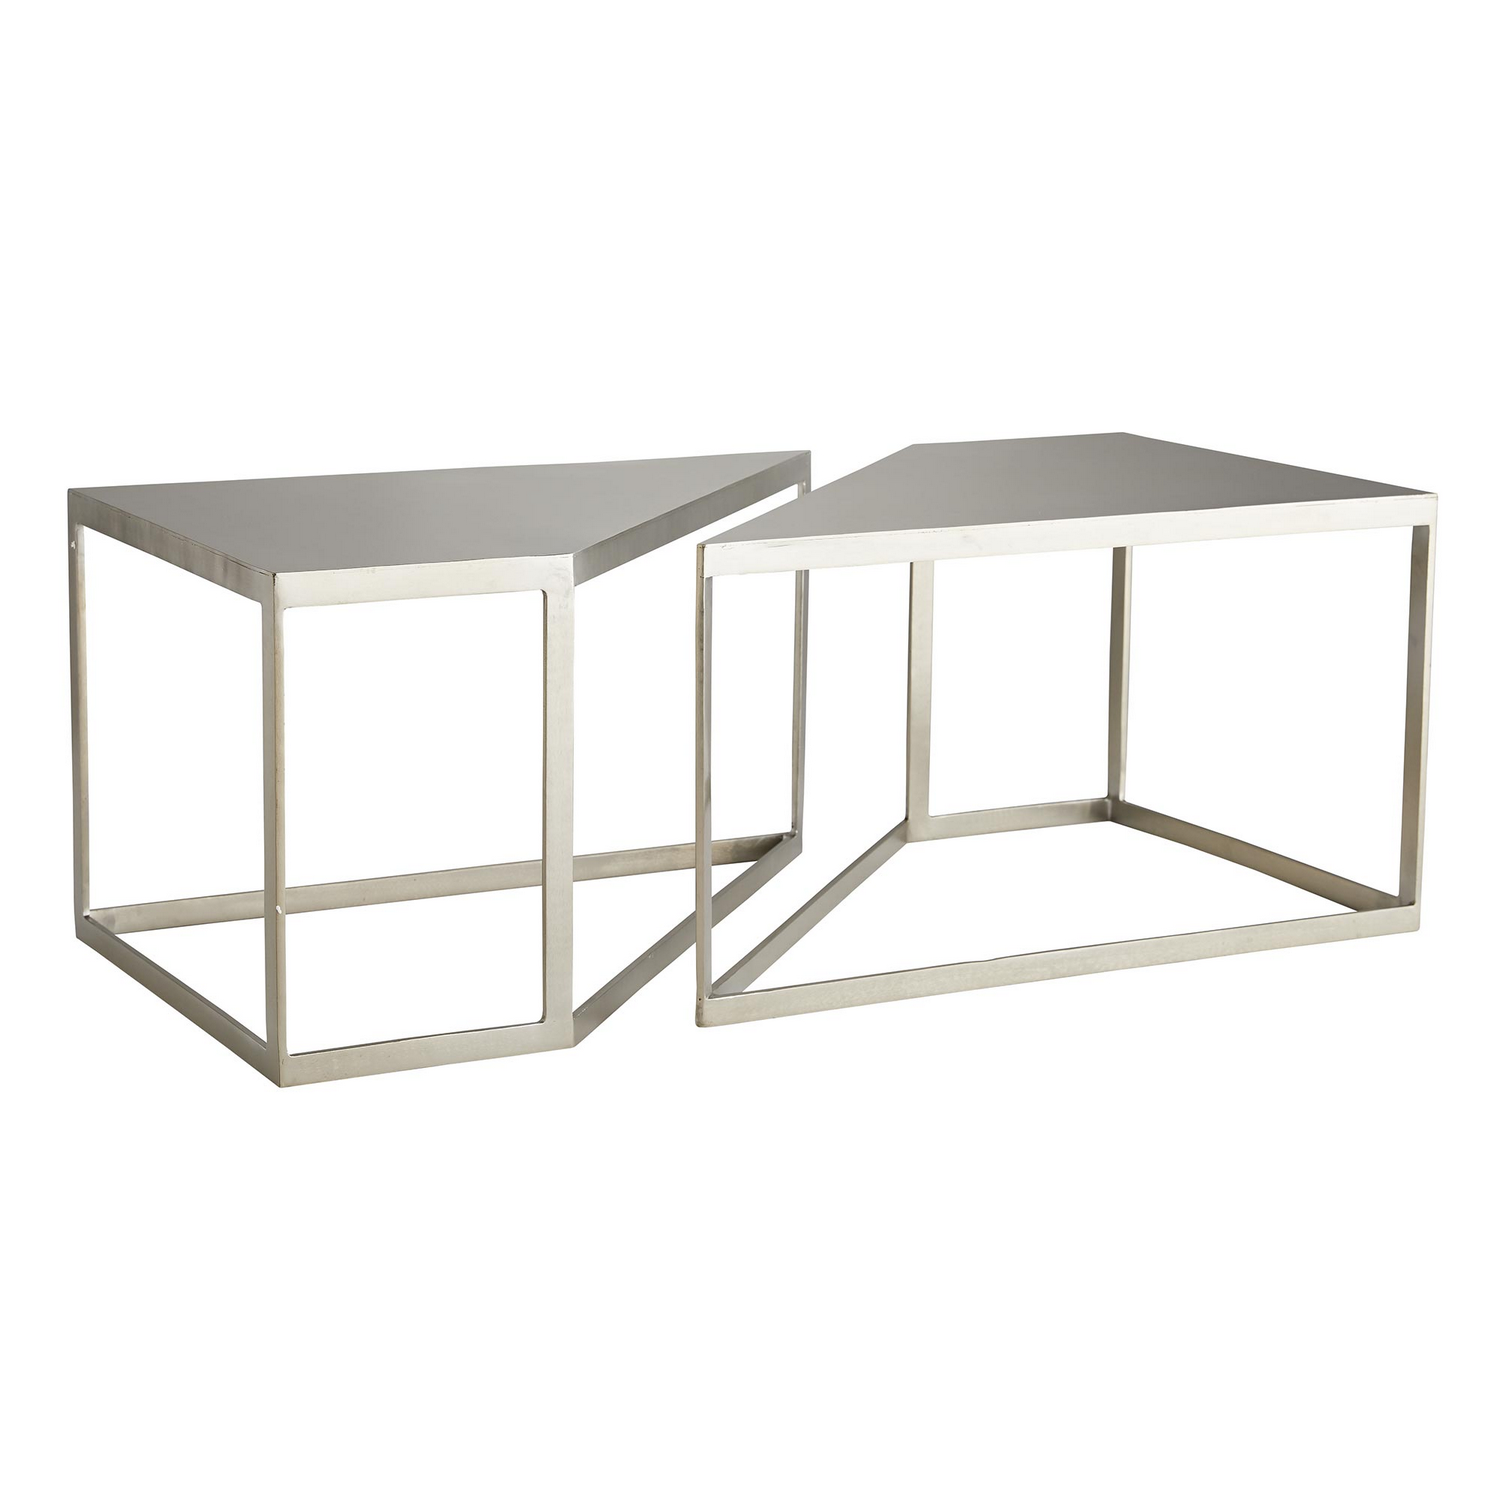 Cocktail Tables Set of 2 by Arteriors 6908